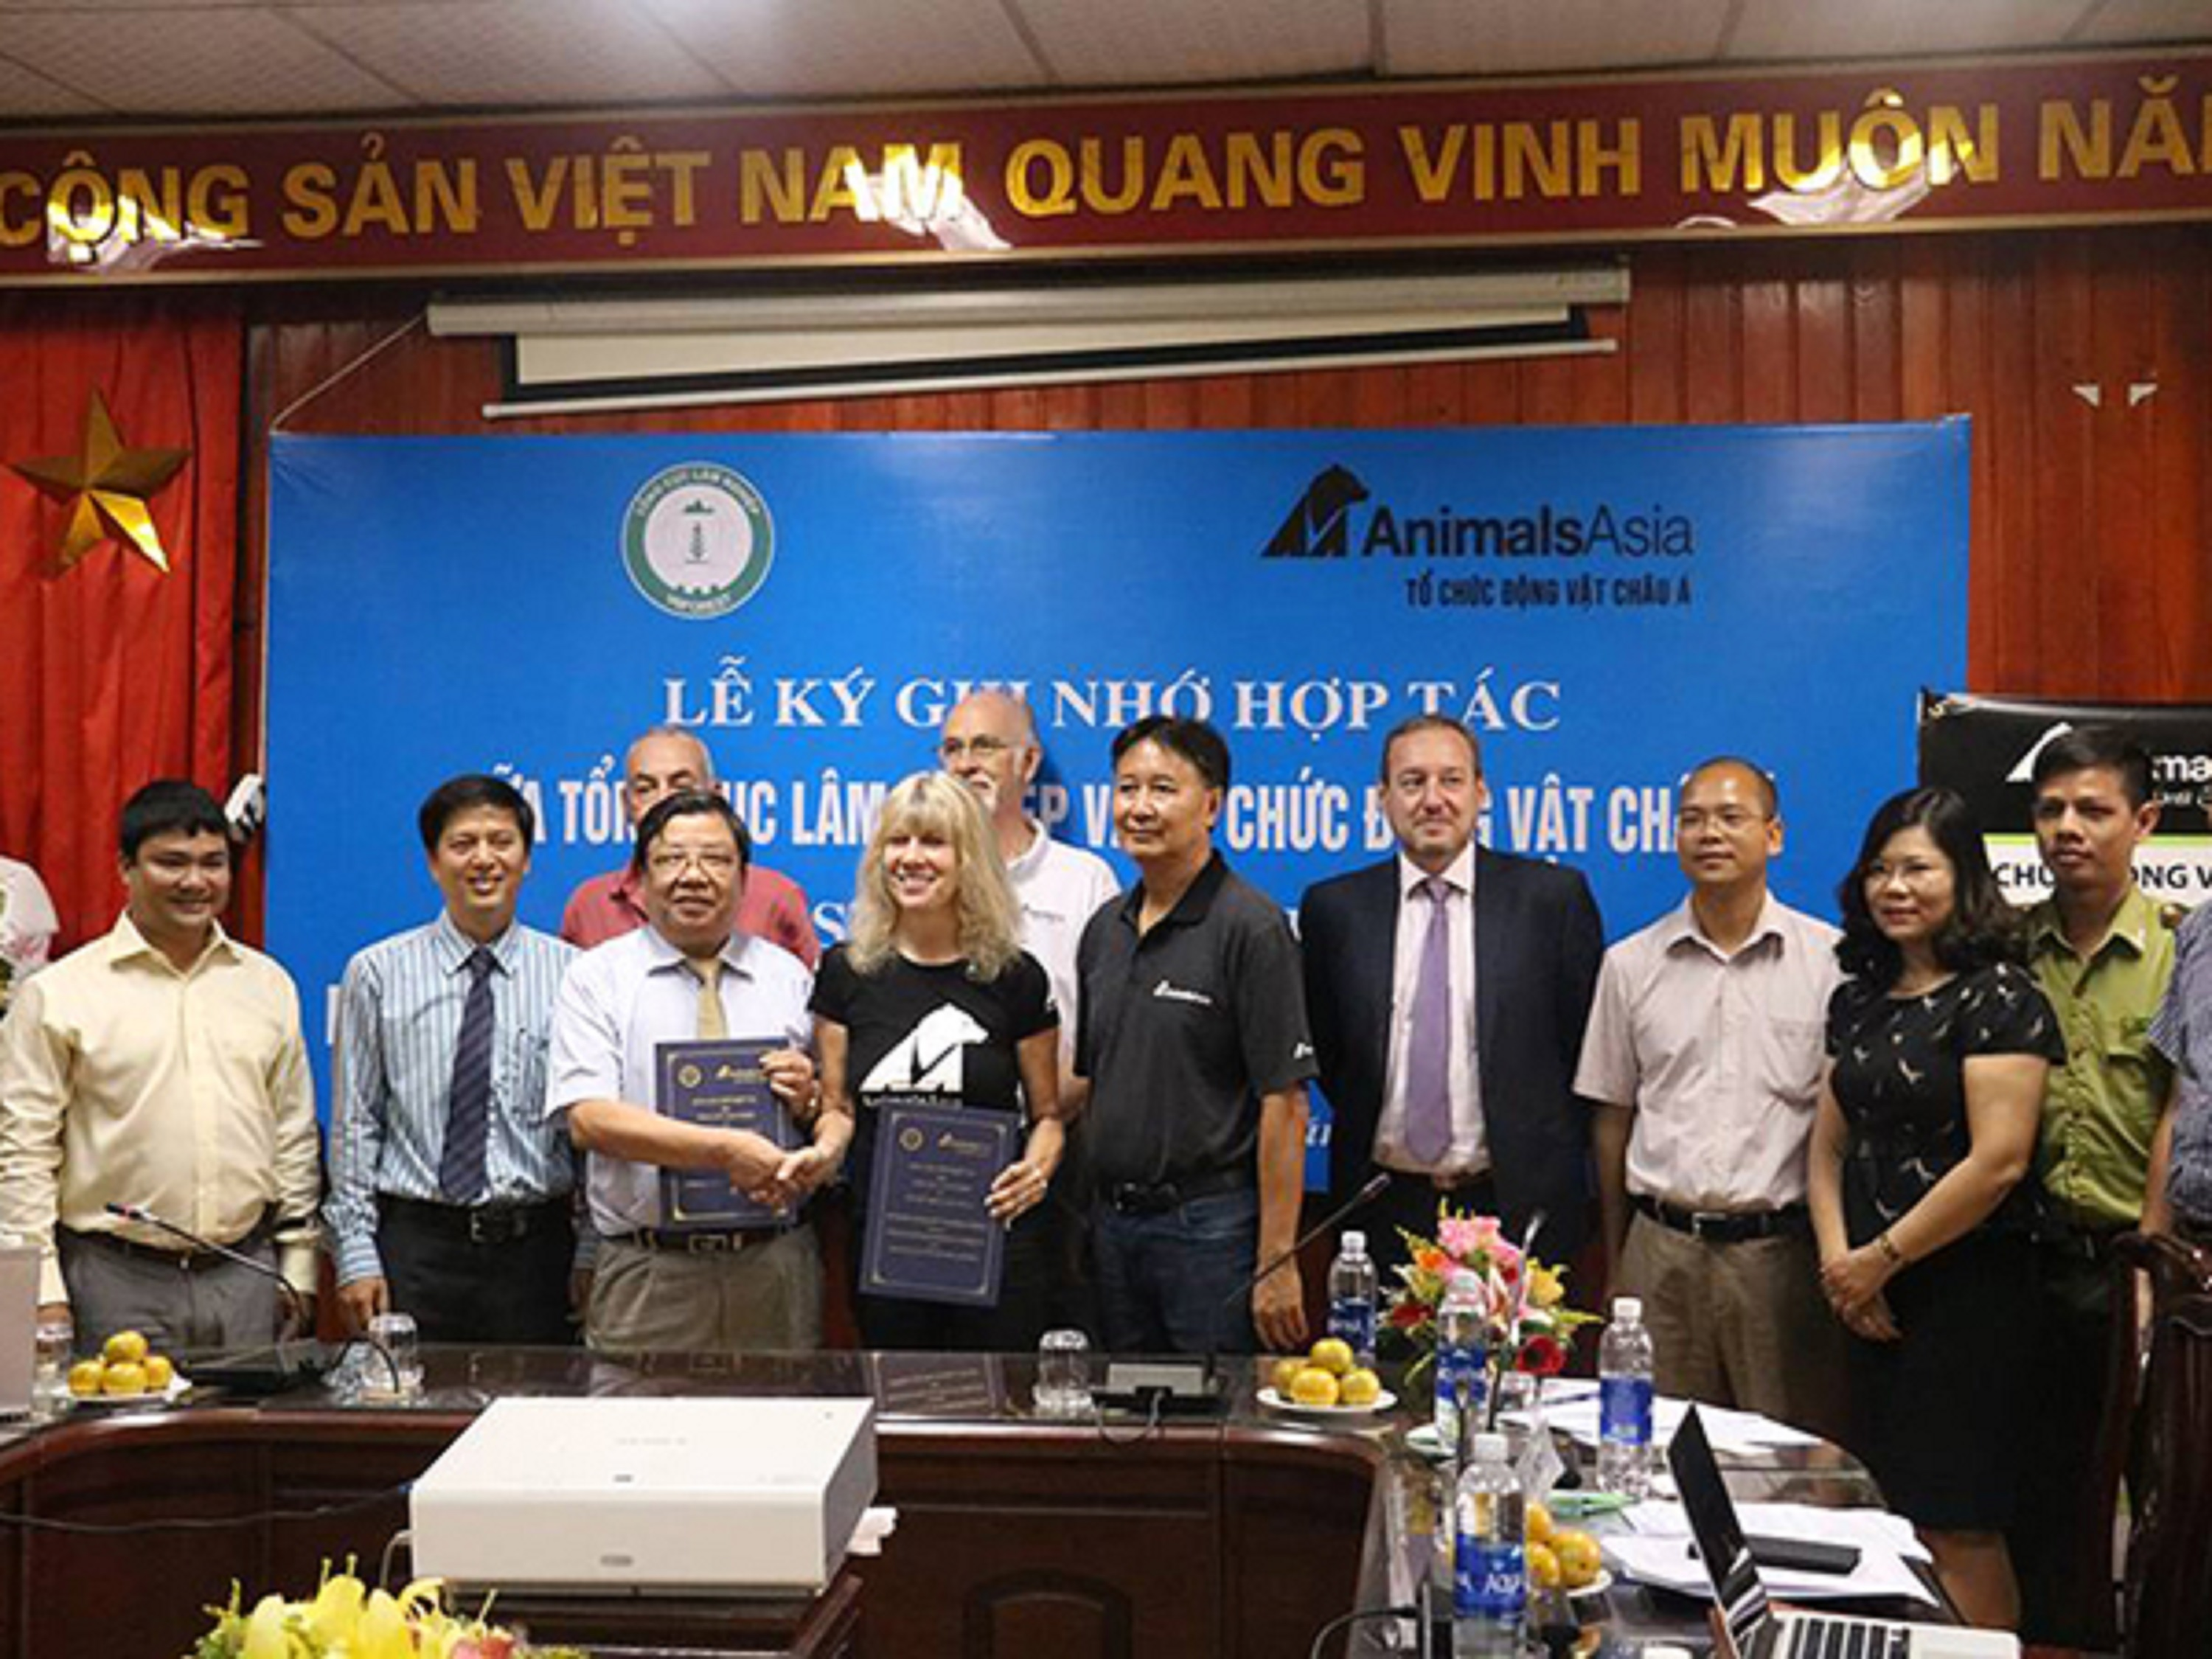 Vietnam agrees plan to close all bear bile farms